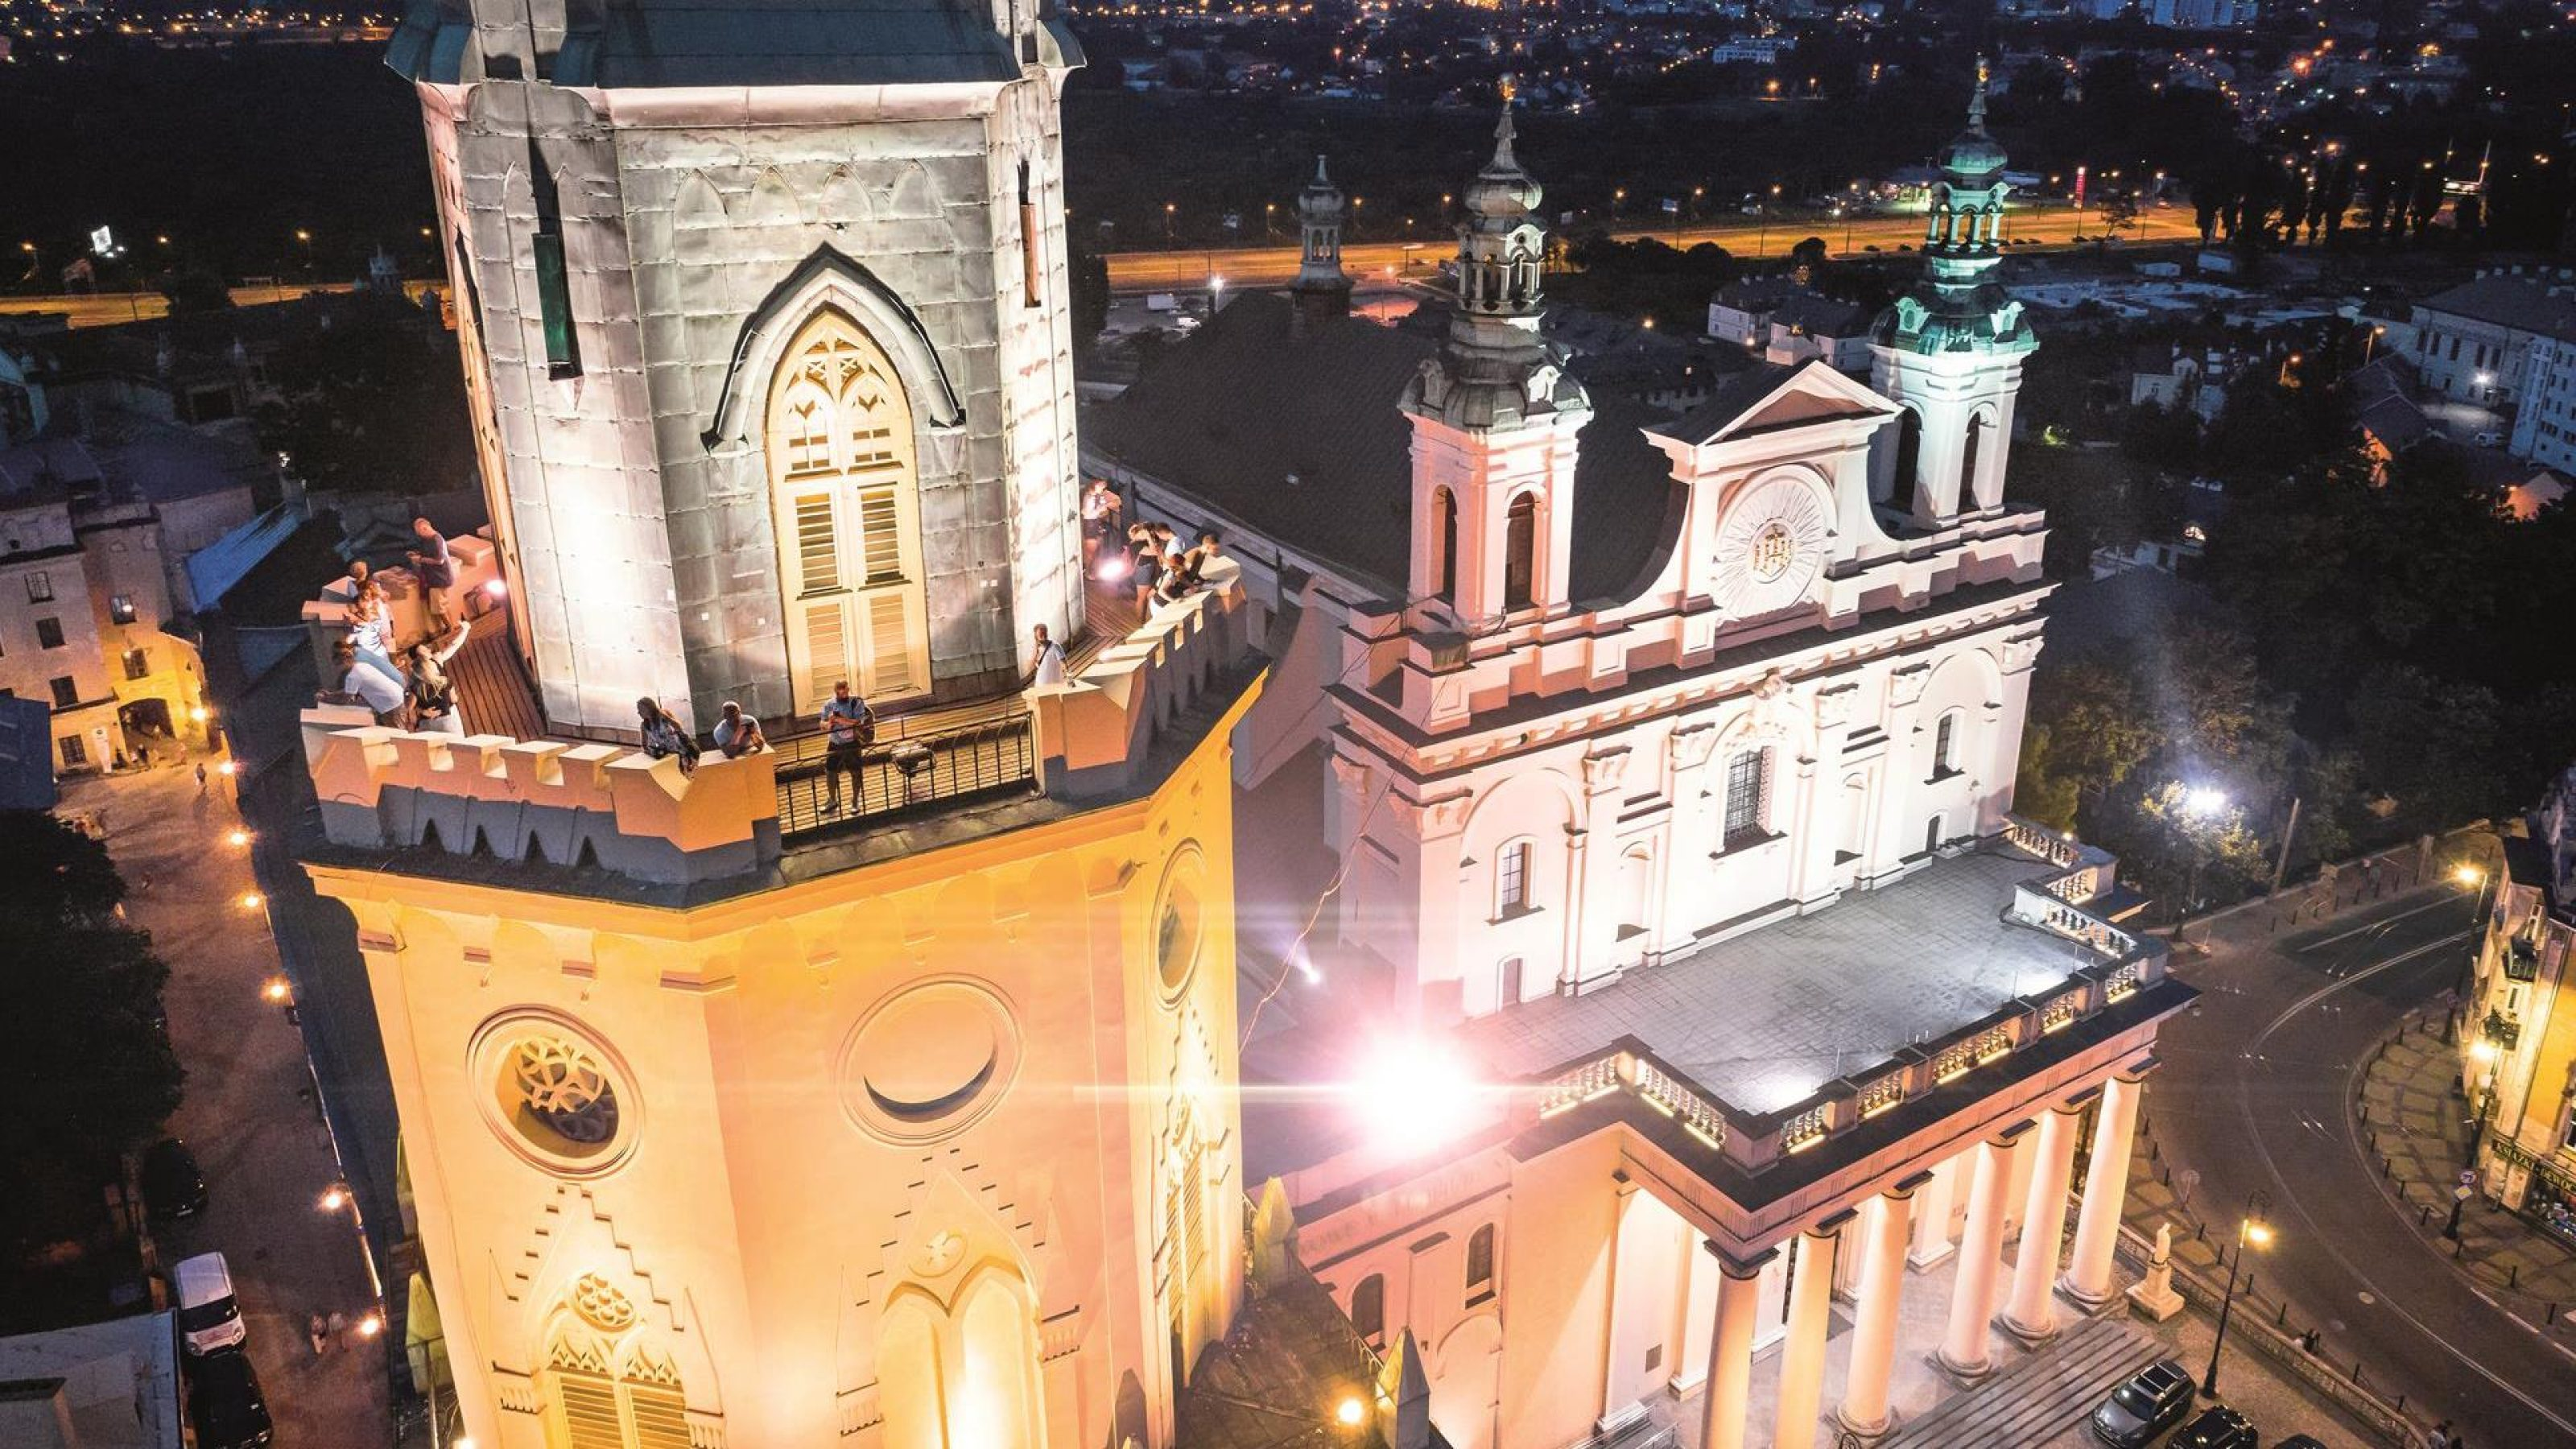 The Trinitarian Tower and the Archcathedral seen from above